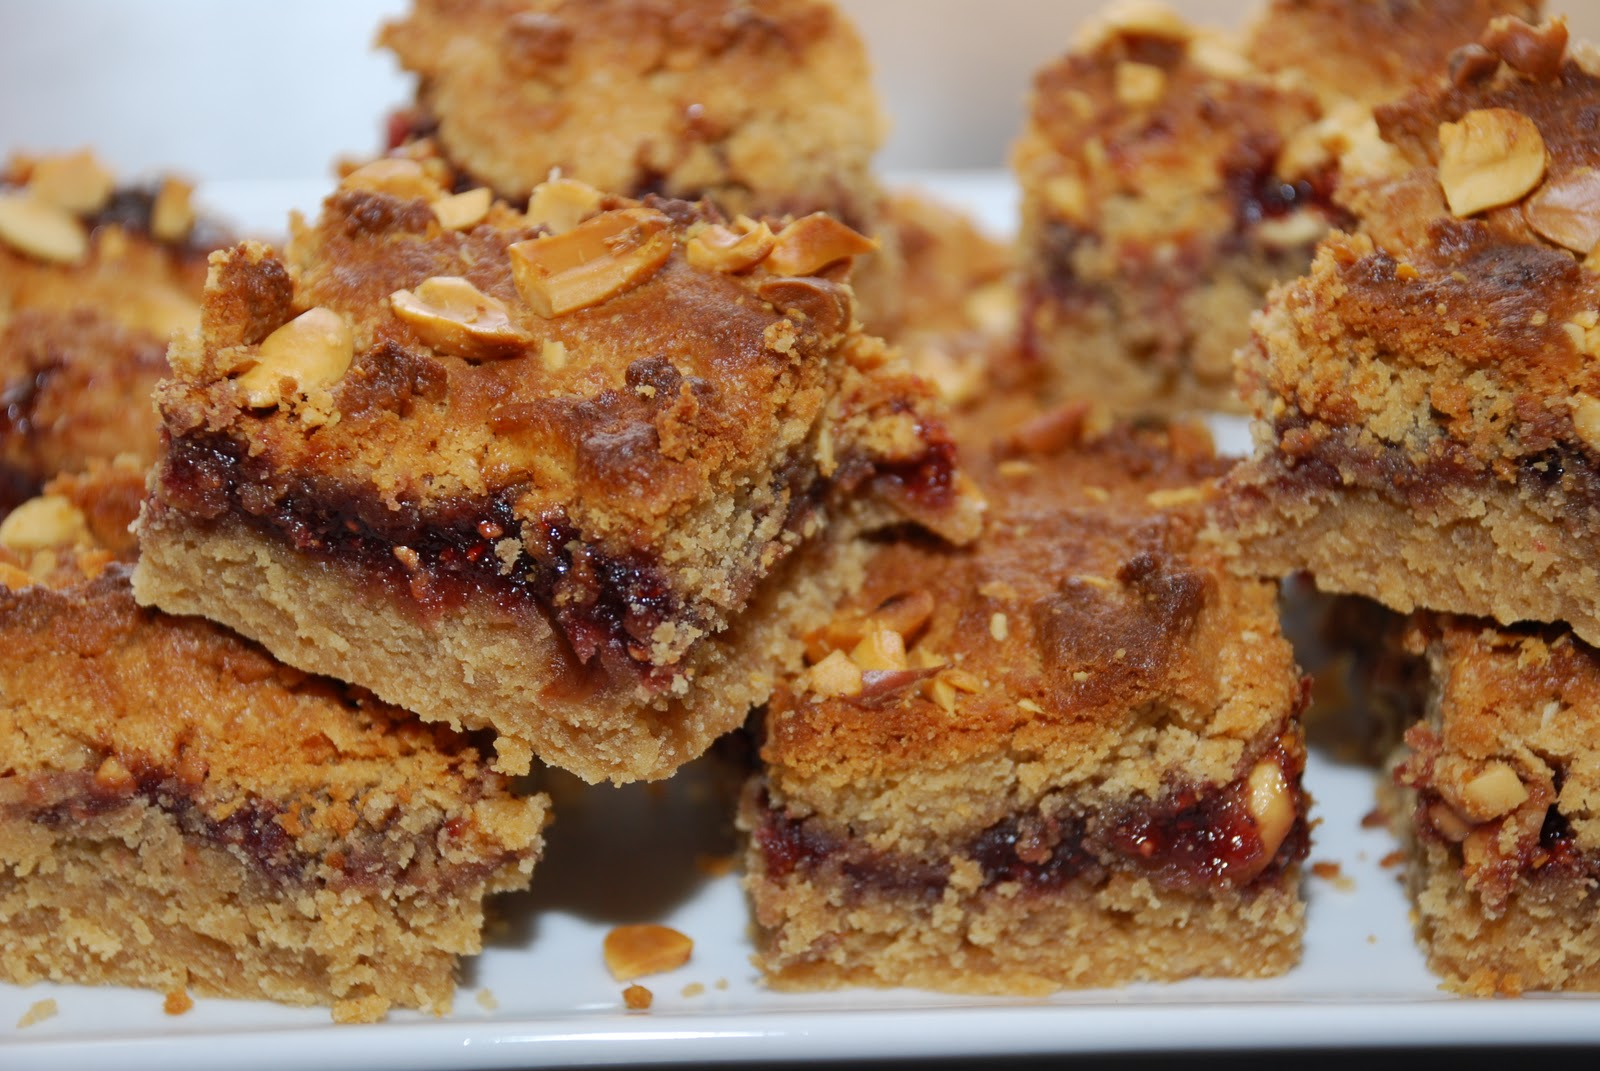 Tomatoes on the Vine: Peanut Butter and Jelly Bars